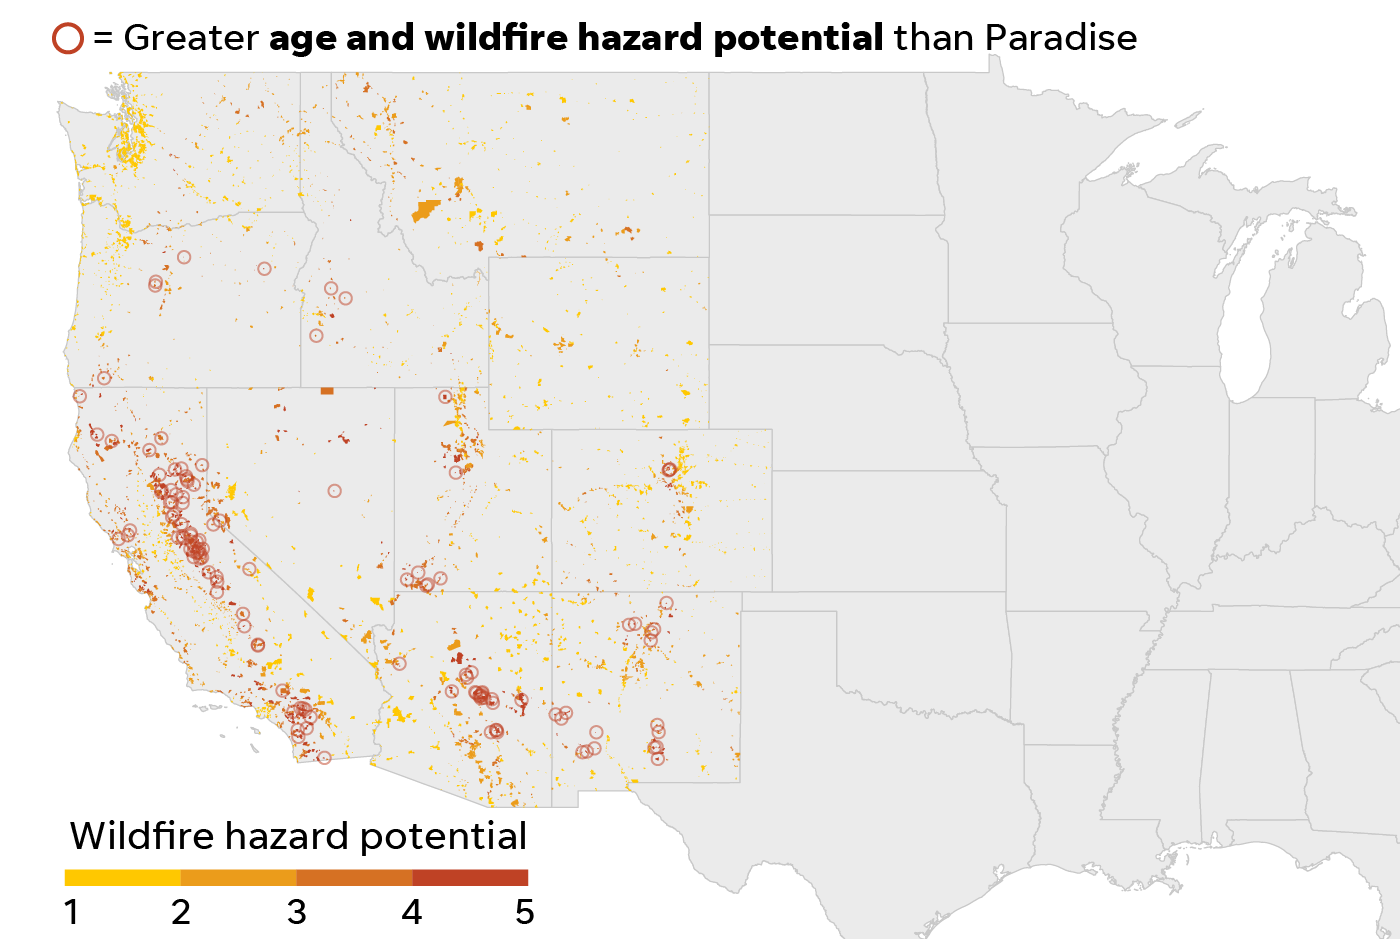 Places with both older residents and greater wildfire hazard scores than Paradise, Calif.